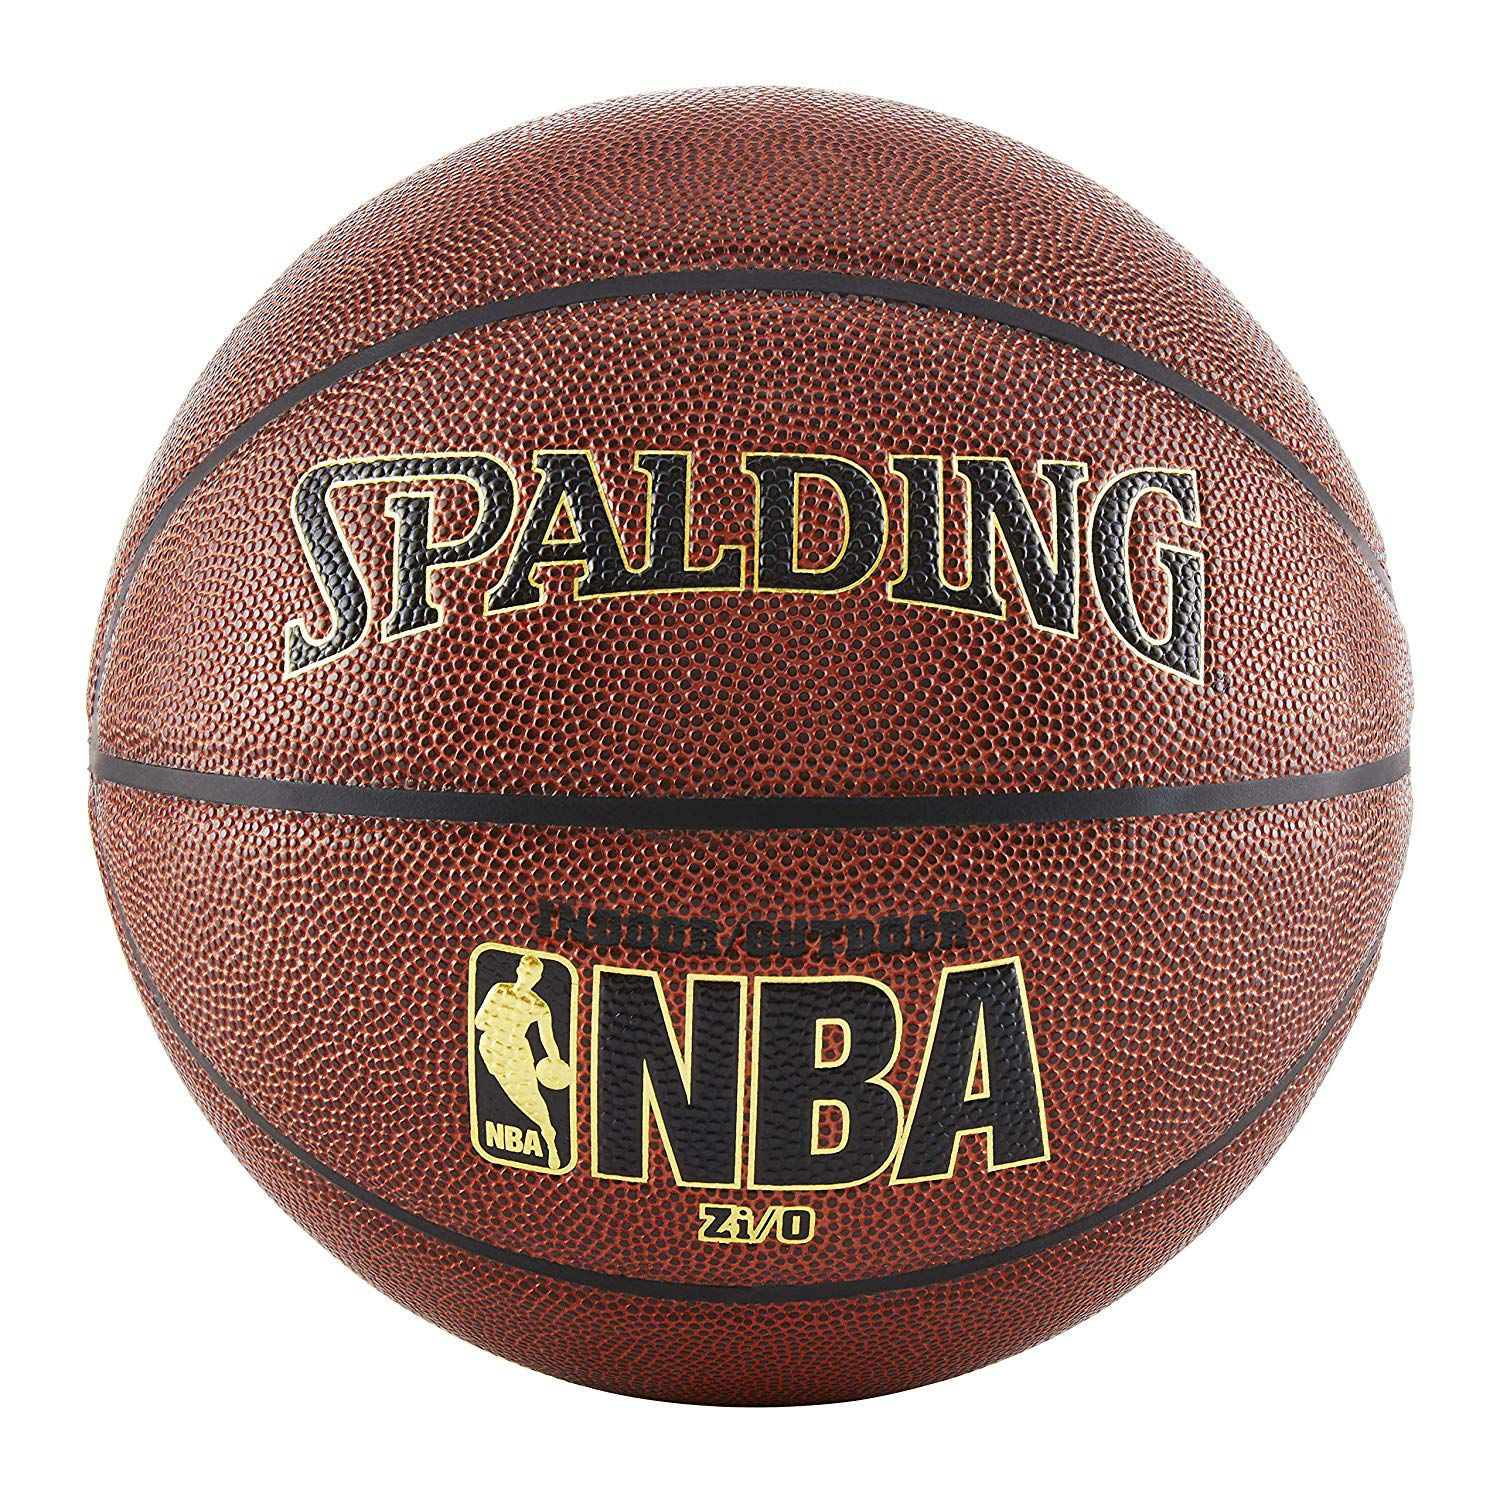 "Baloncesto Spalding NBA Zi / O Indoor / Outdoor - Talla oficial 7 (29.5 "")"